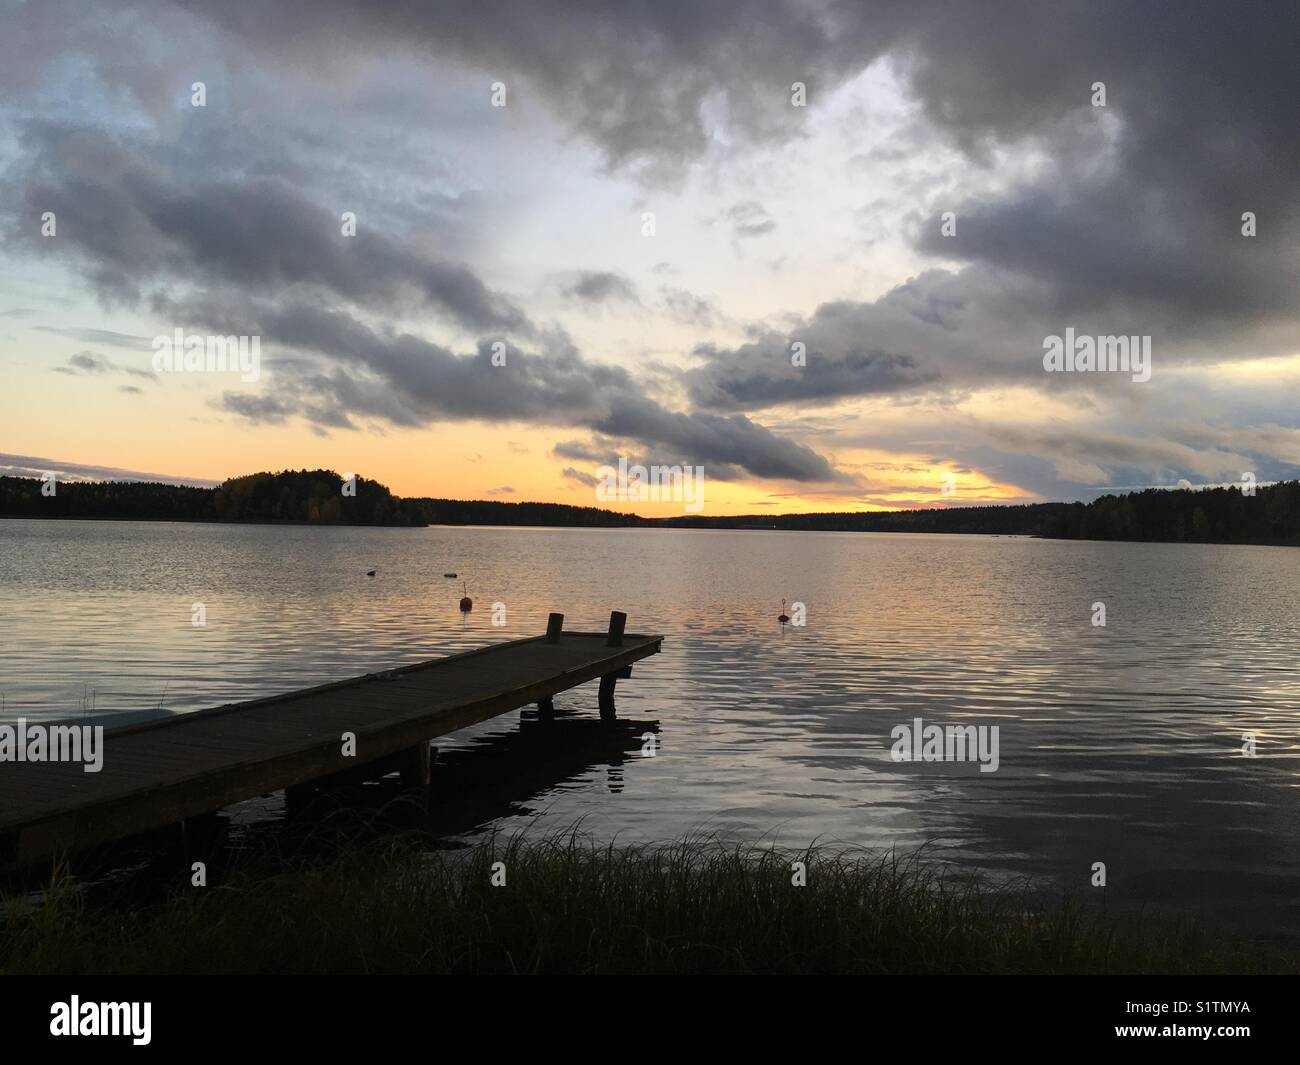 Sunset over a lake in Dalarna, Sweden. - Stock Image